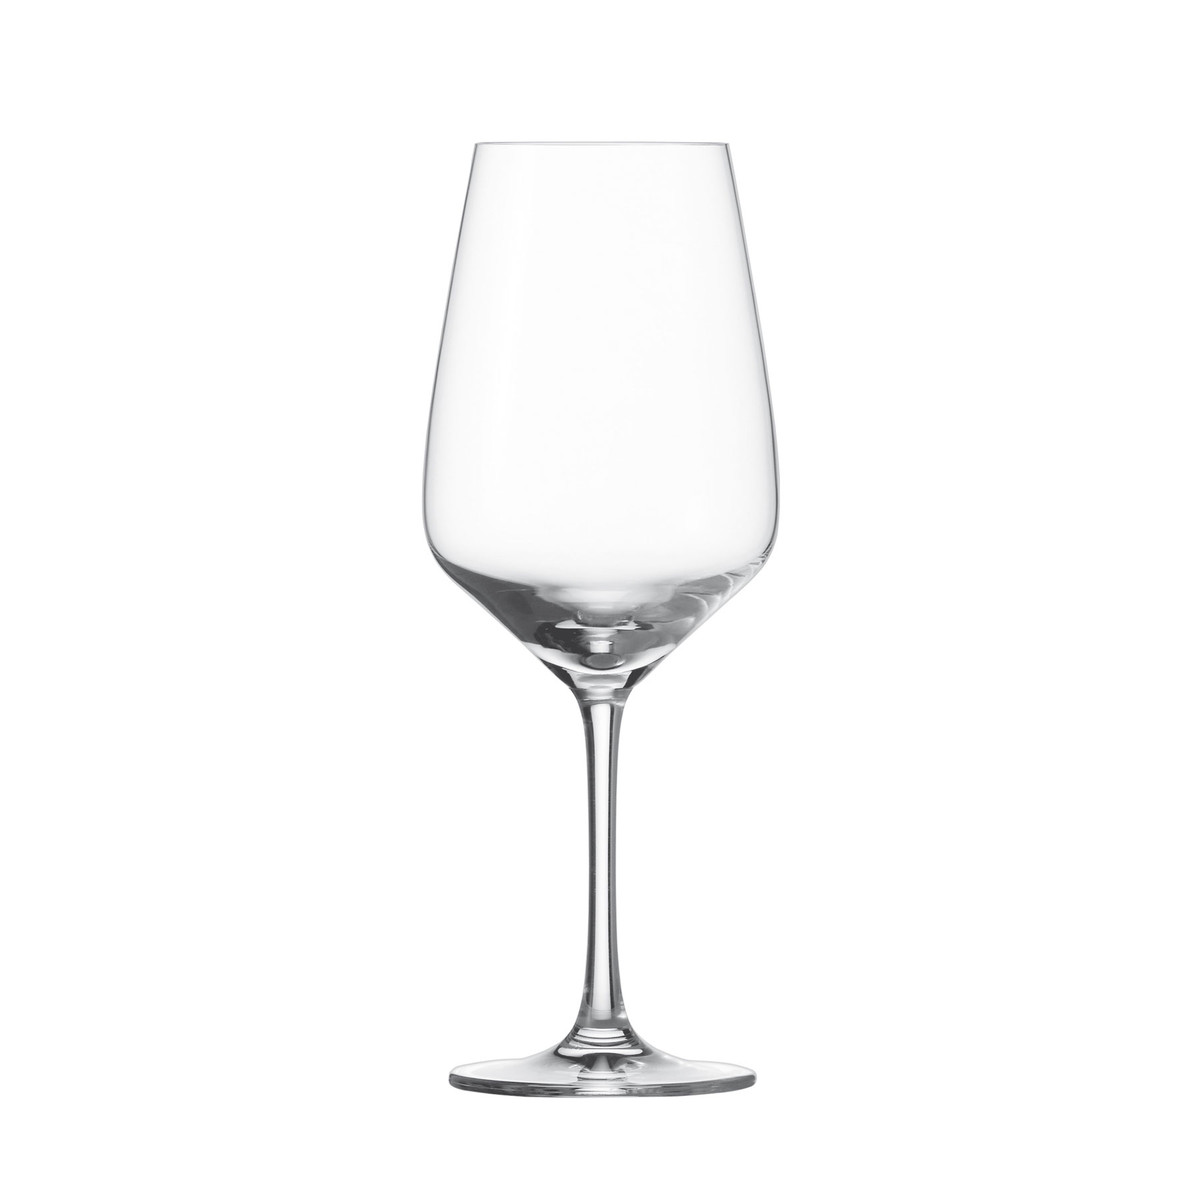 Schott Glassware | Schott Wine Glasses | Schott Zwiesel Wine Glasses